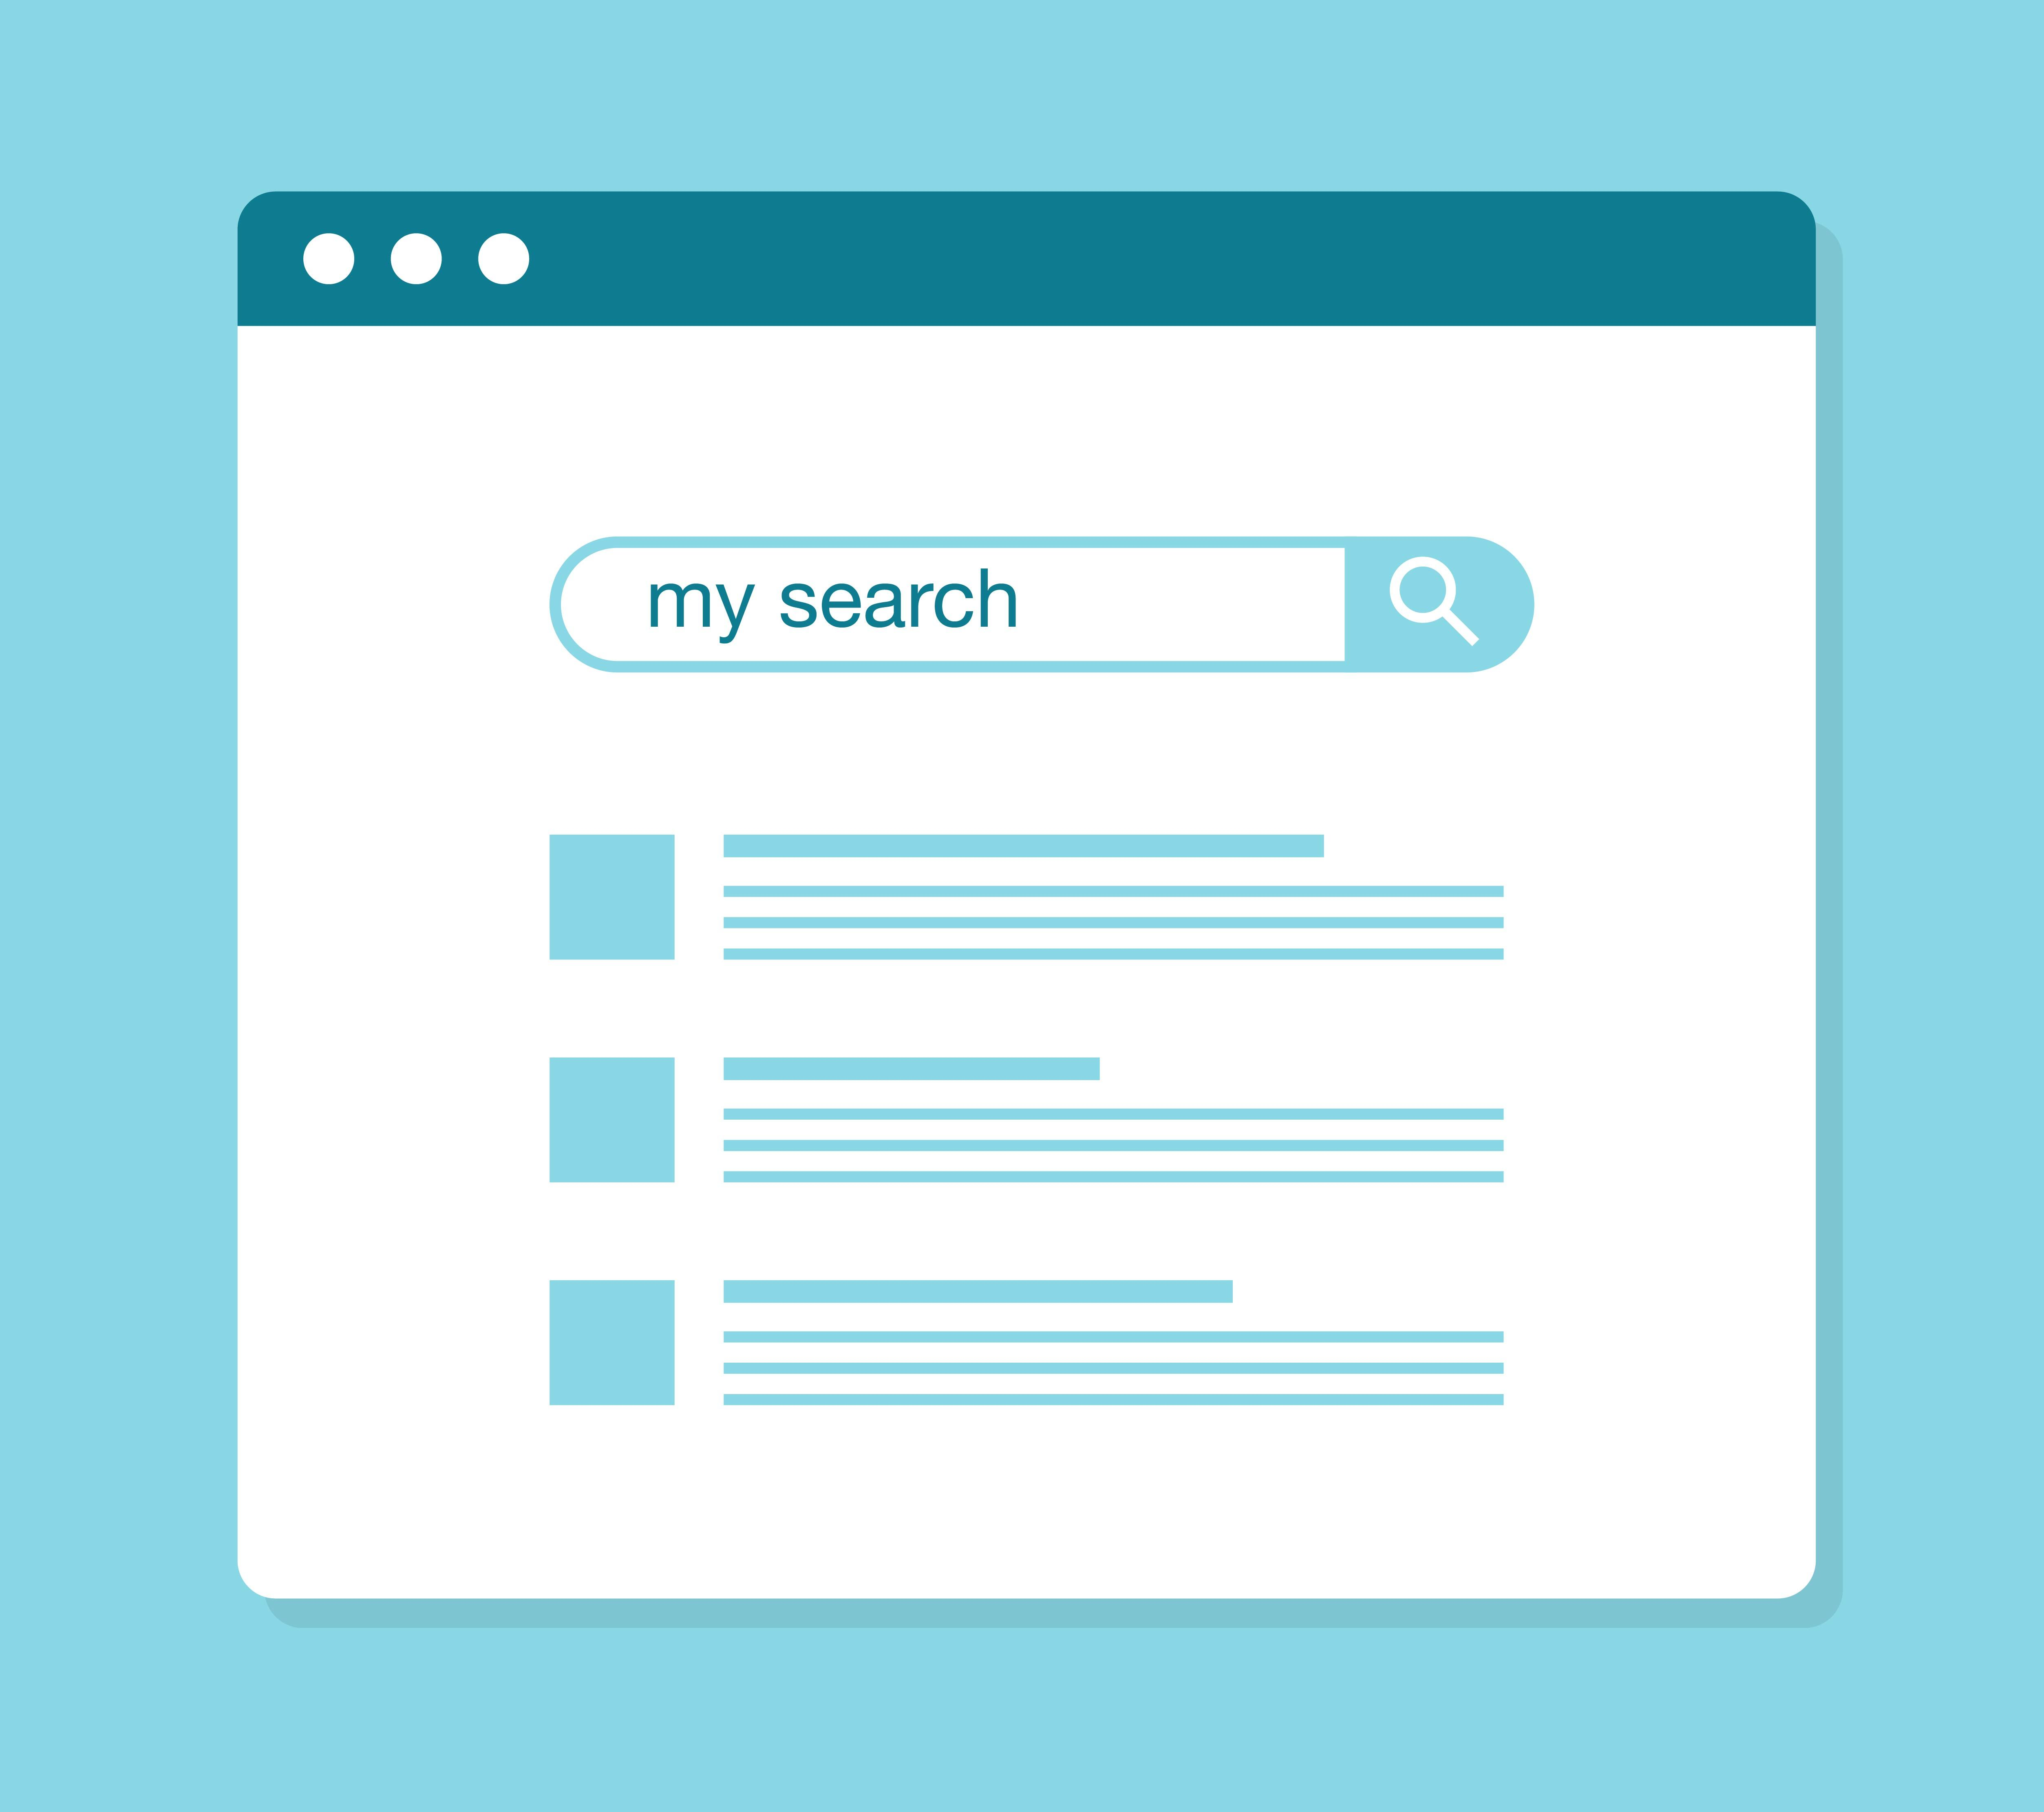 How Important is a Top Listing In Google? (And Why?)